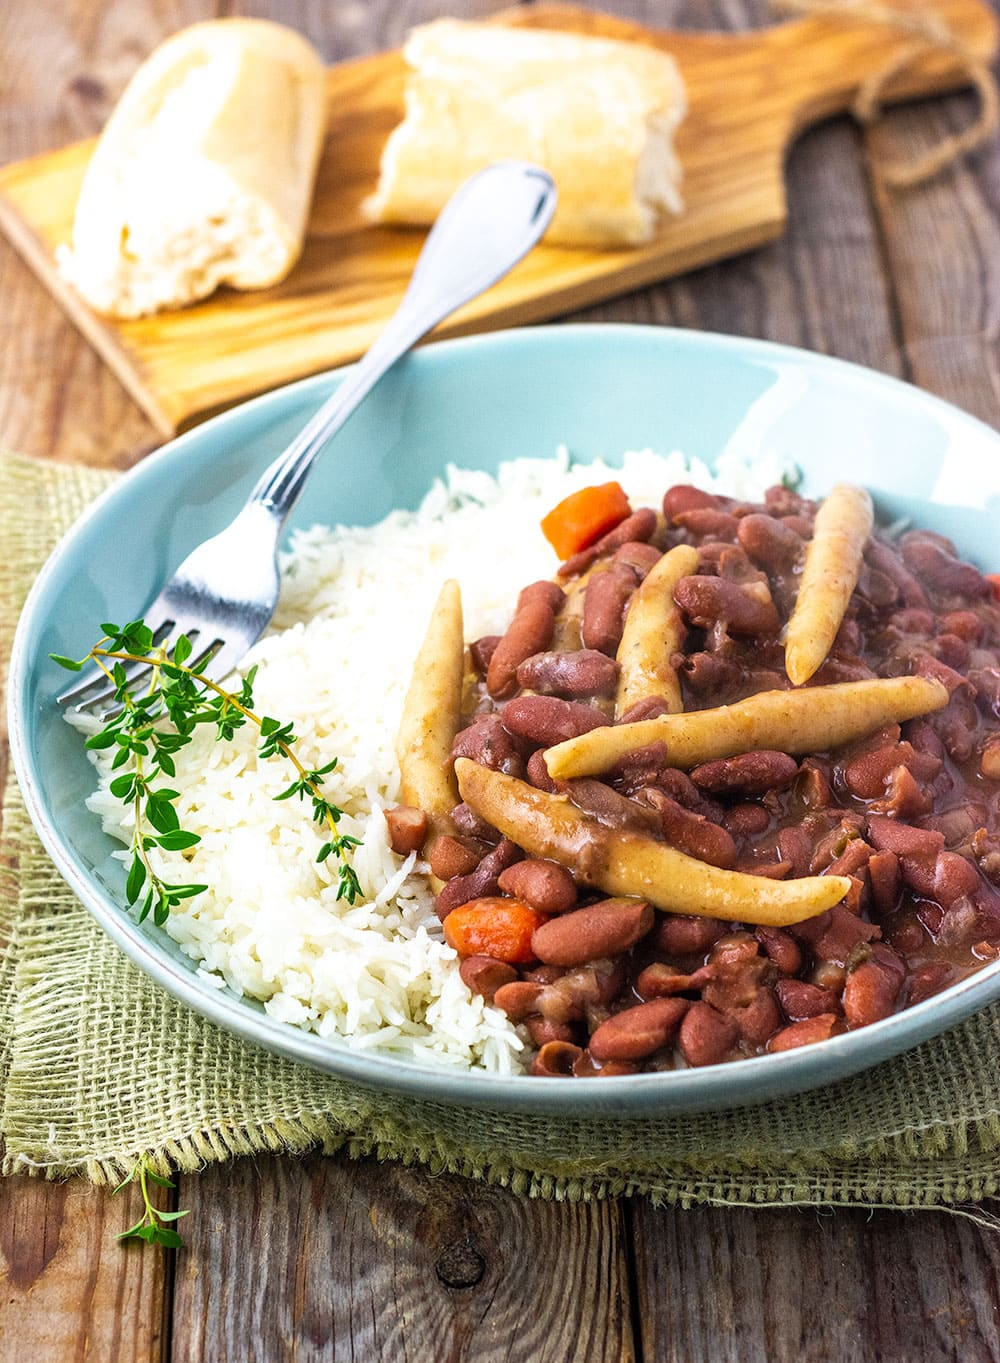 Jamaican stew peas with spinners, carrots, on steamed rice in a blue bowl, stainless steel fork, garnished with thyme sprigs on a brown wooden background with cutting board and bread